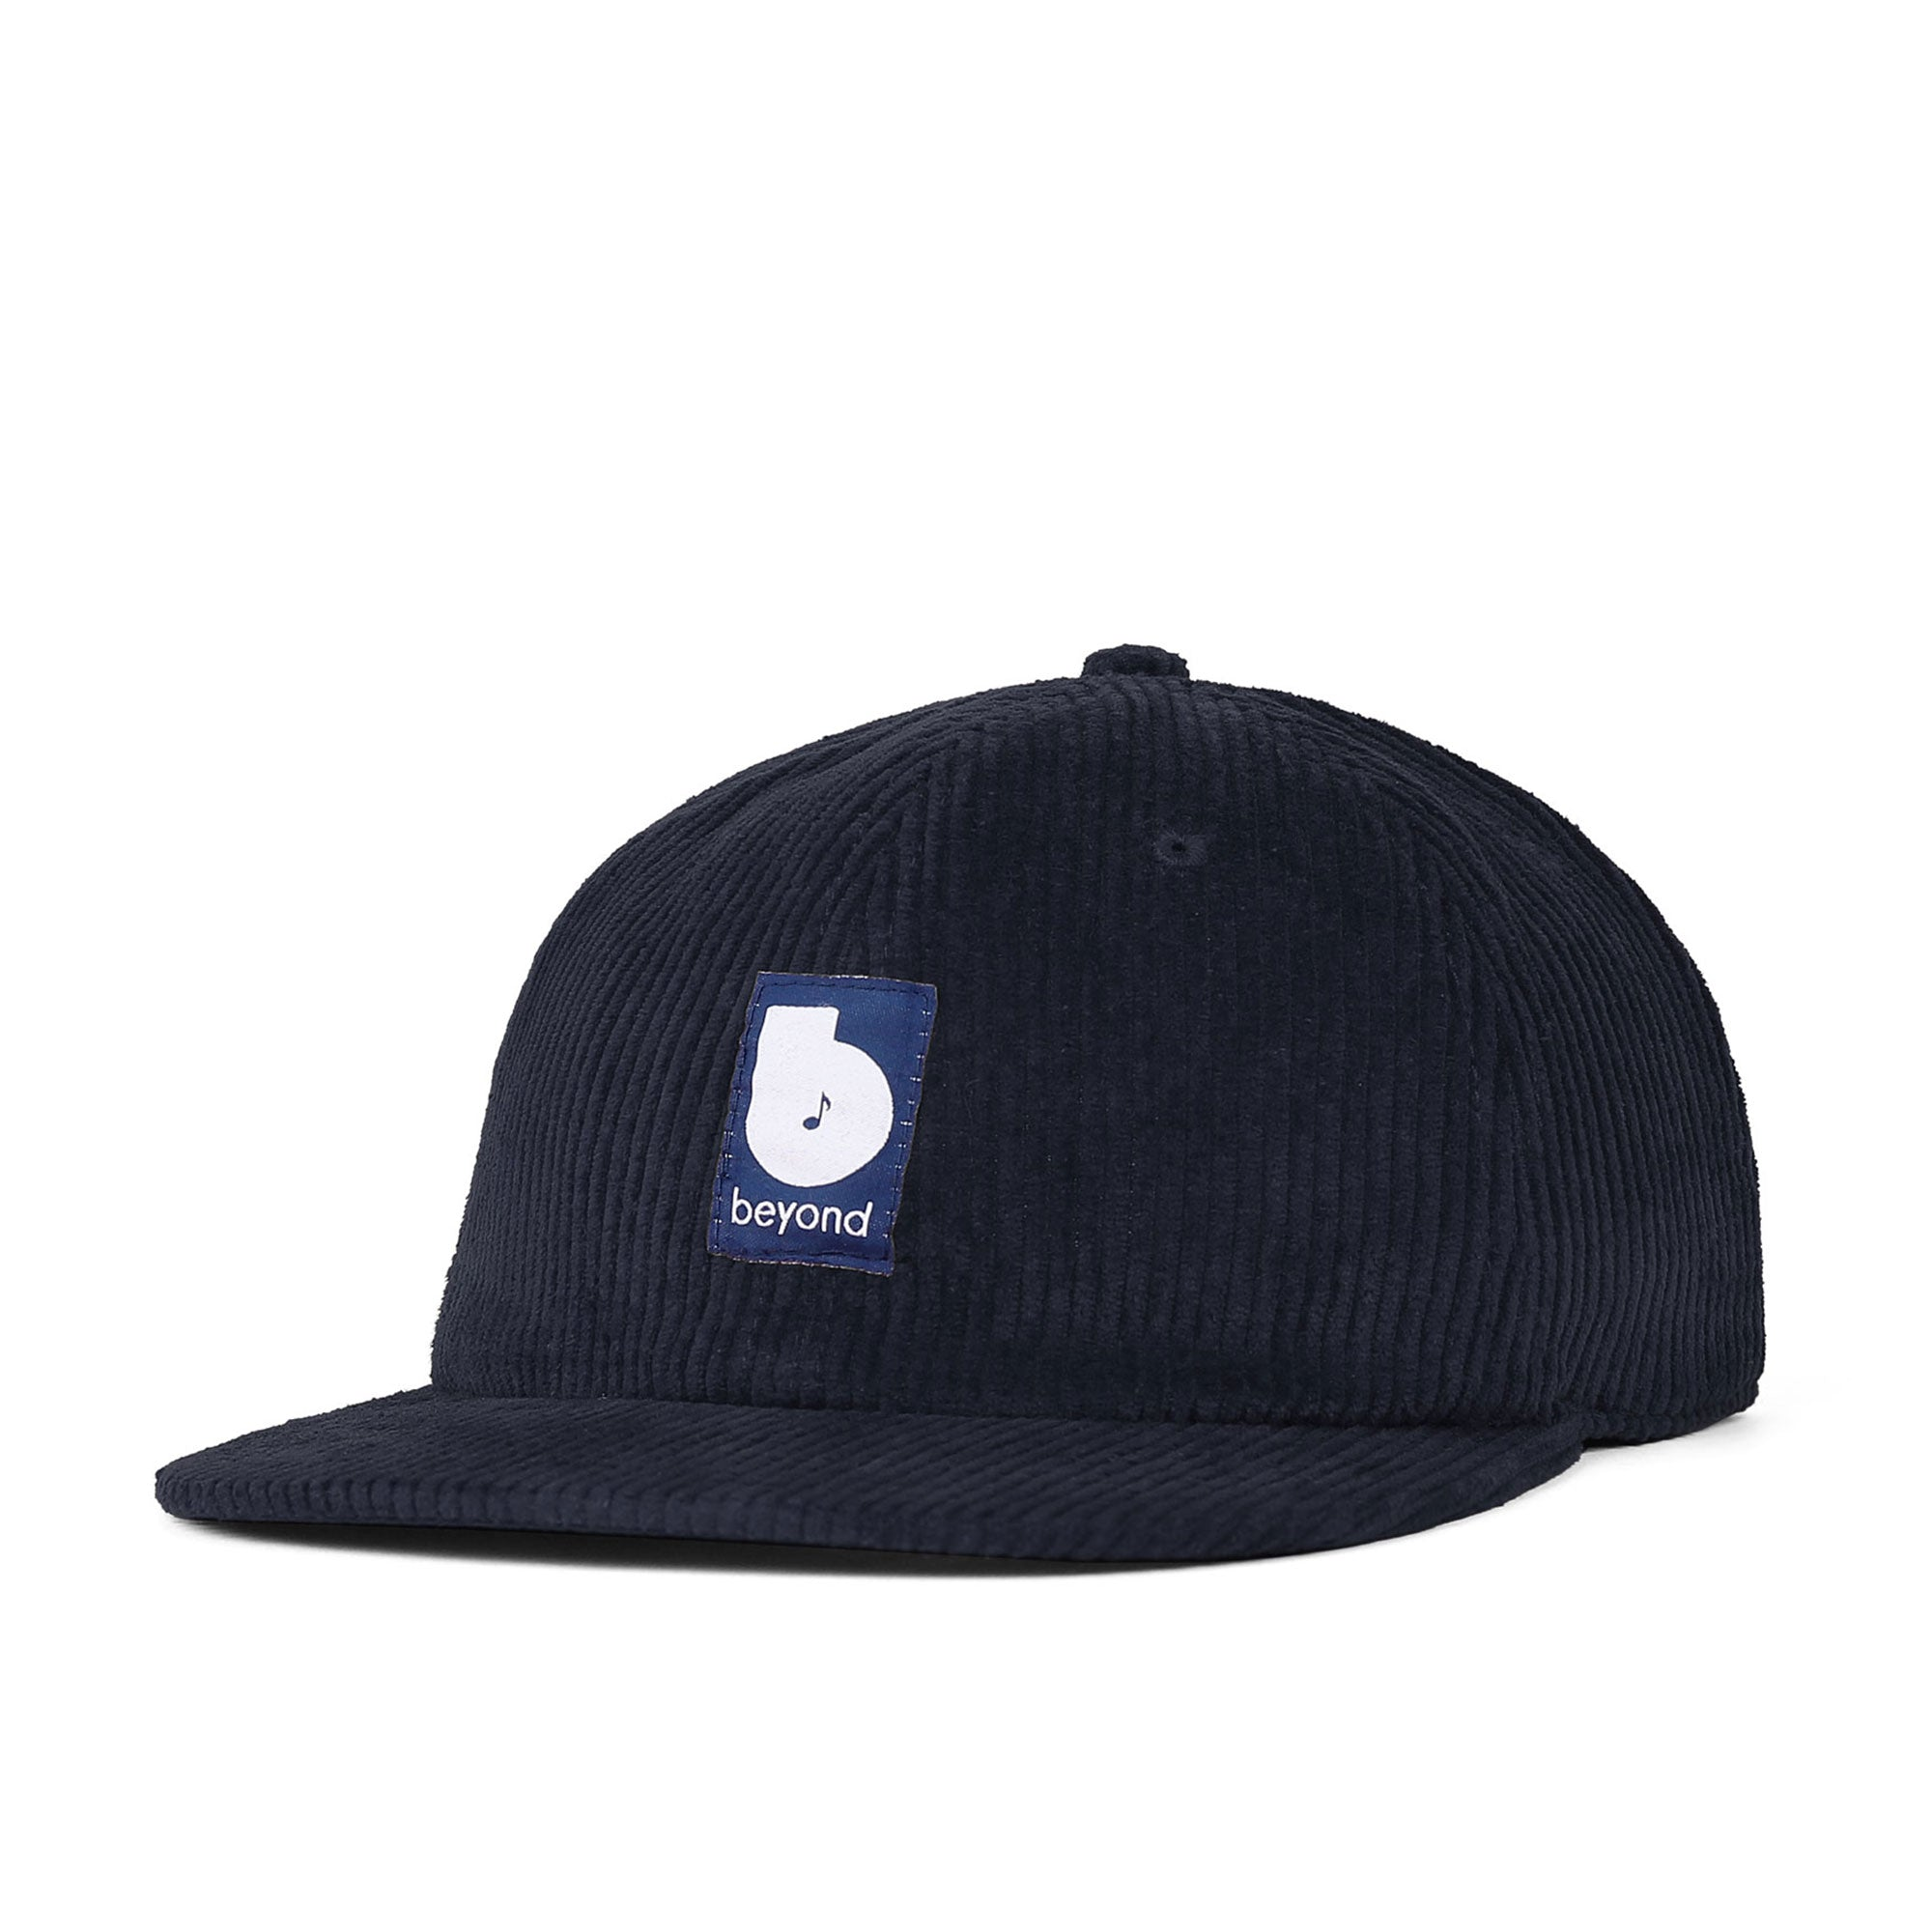 Beyond Note Cap Product Photo #1